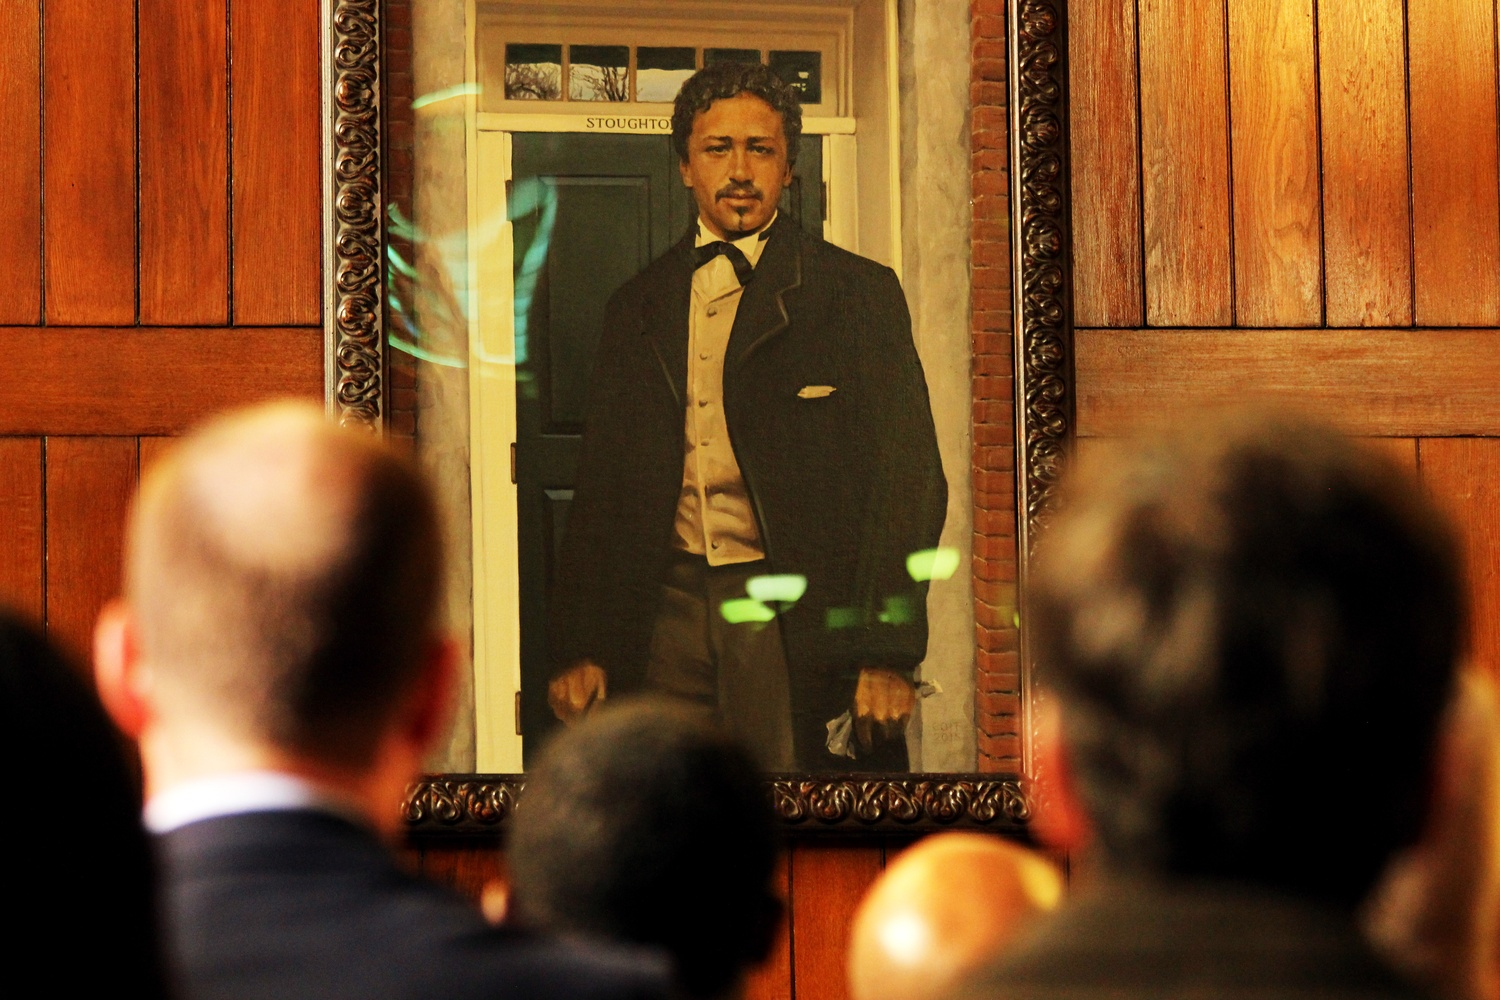 A new portrait of Richard T. Greener was unveiled at a ceremony in Annenberg Hall in 2016.